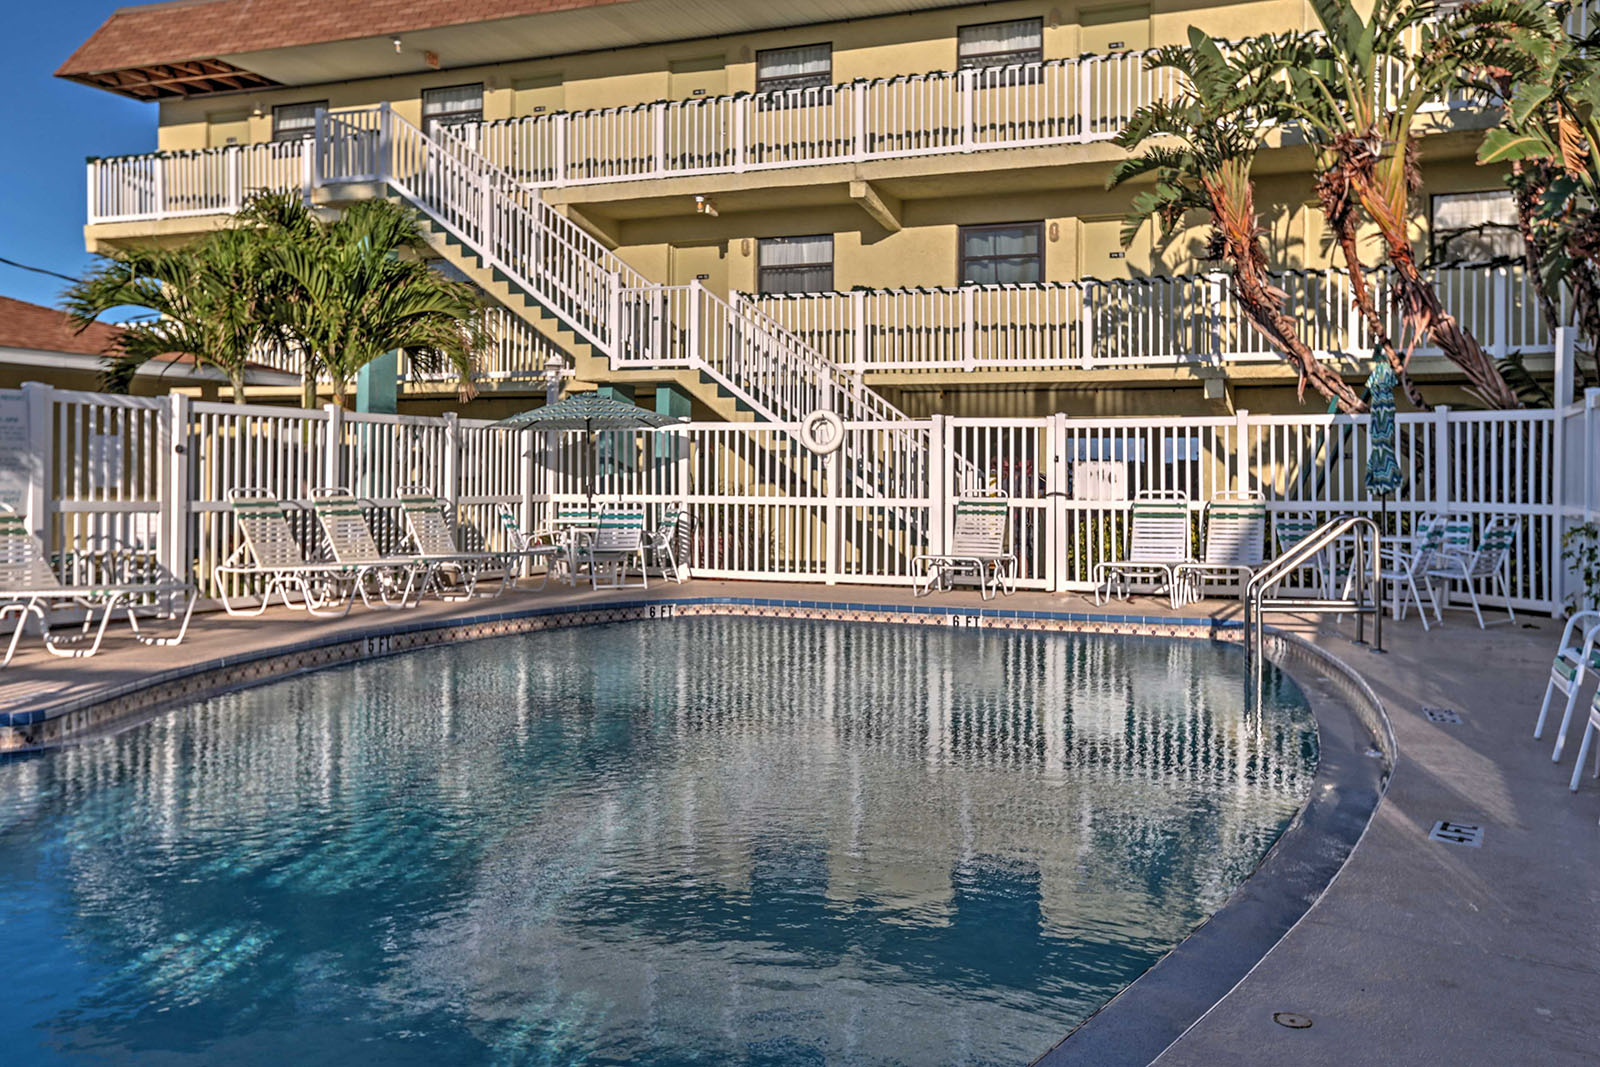 Resort pool at the family friendly Tuckaway Shores Resort